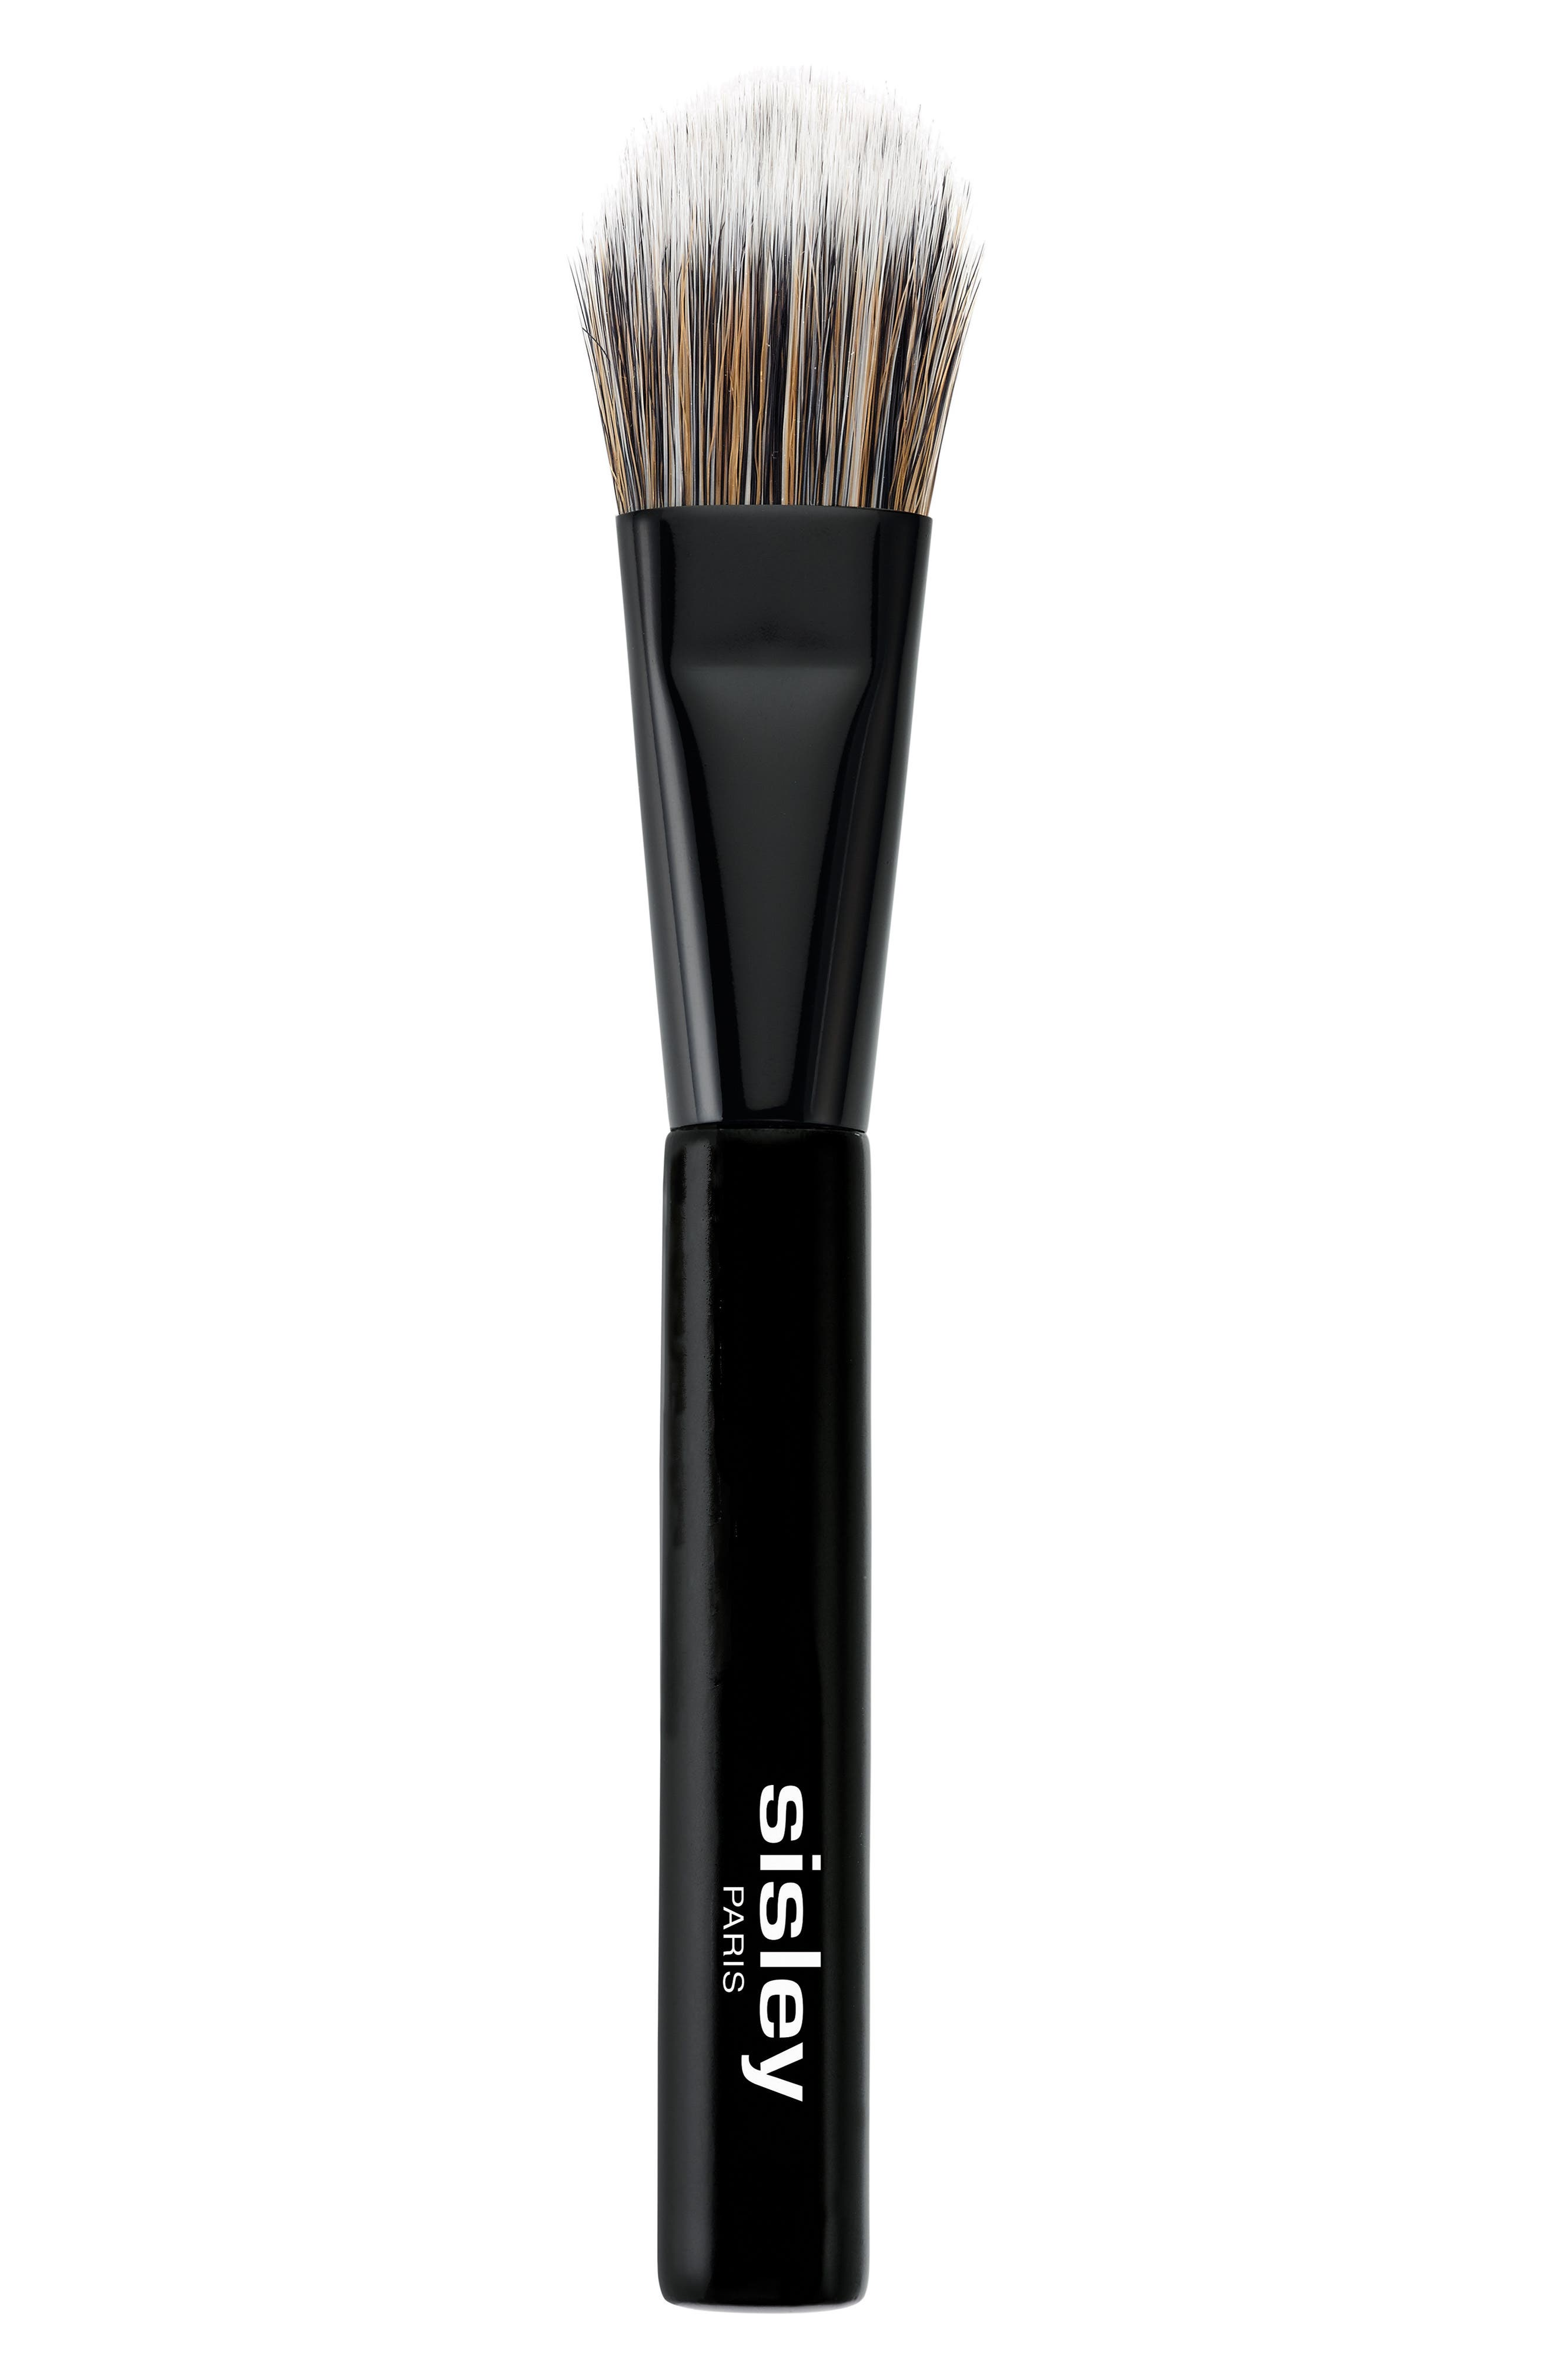 What it is: A synthetic-bristle foundation brush with a tapered, rounded, flat head that provides natural to full coverage. What it does: Ideal for use with cream or liquid products, this brush is designed for the easy, allover face application of foundation. It perfectly blends makeup for an even complexion. How to use: Dispense a dime-sized amount of foundation onto the back of the hand. Take a small amount of product using the brush and apply